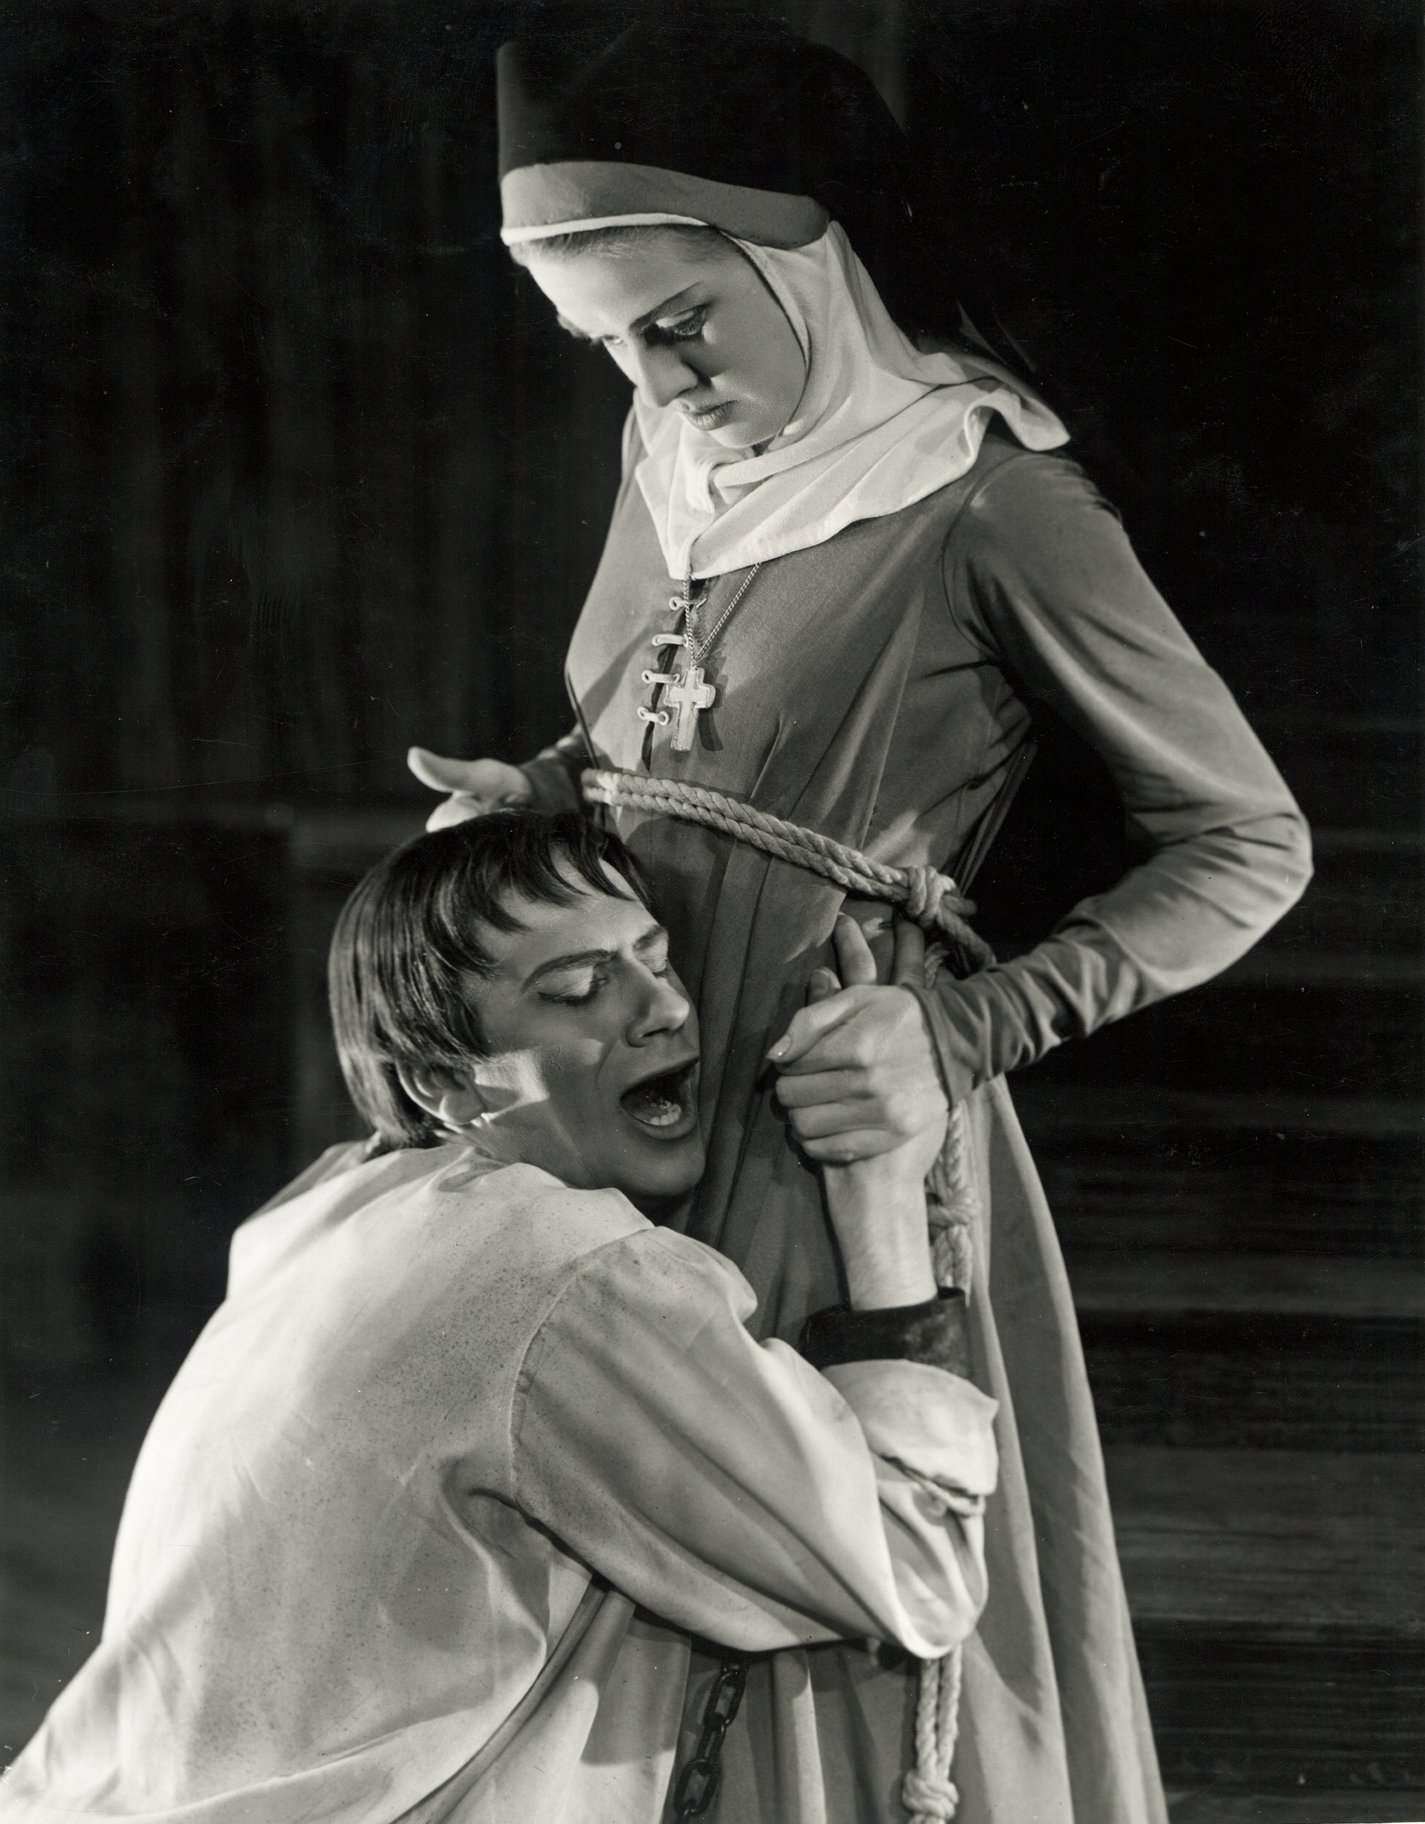 A man clings to the waist of a young nun.